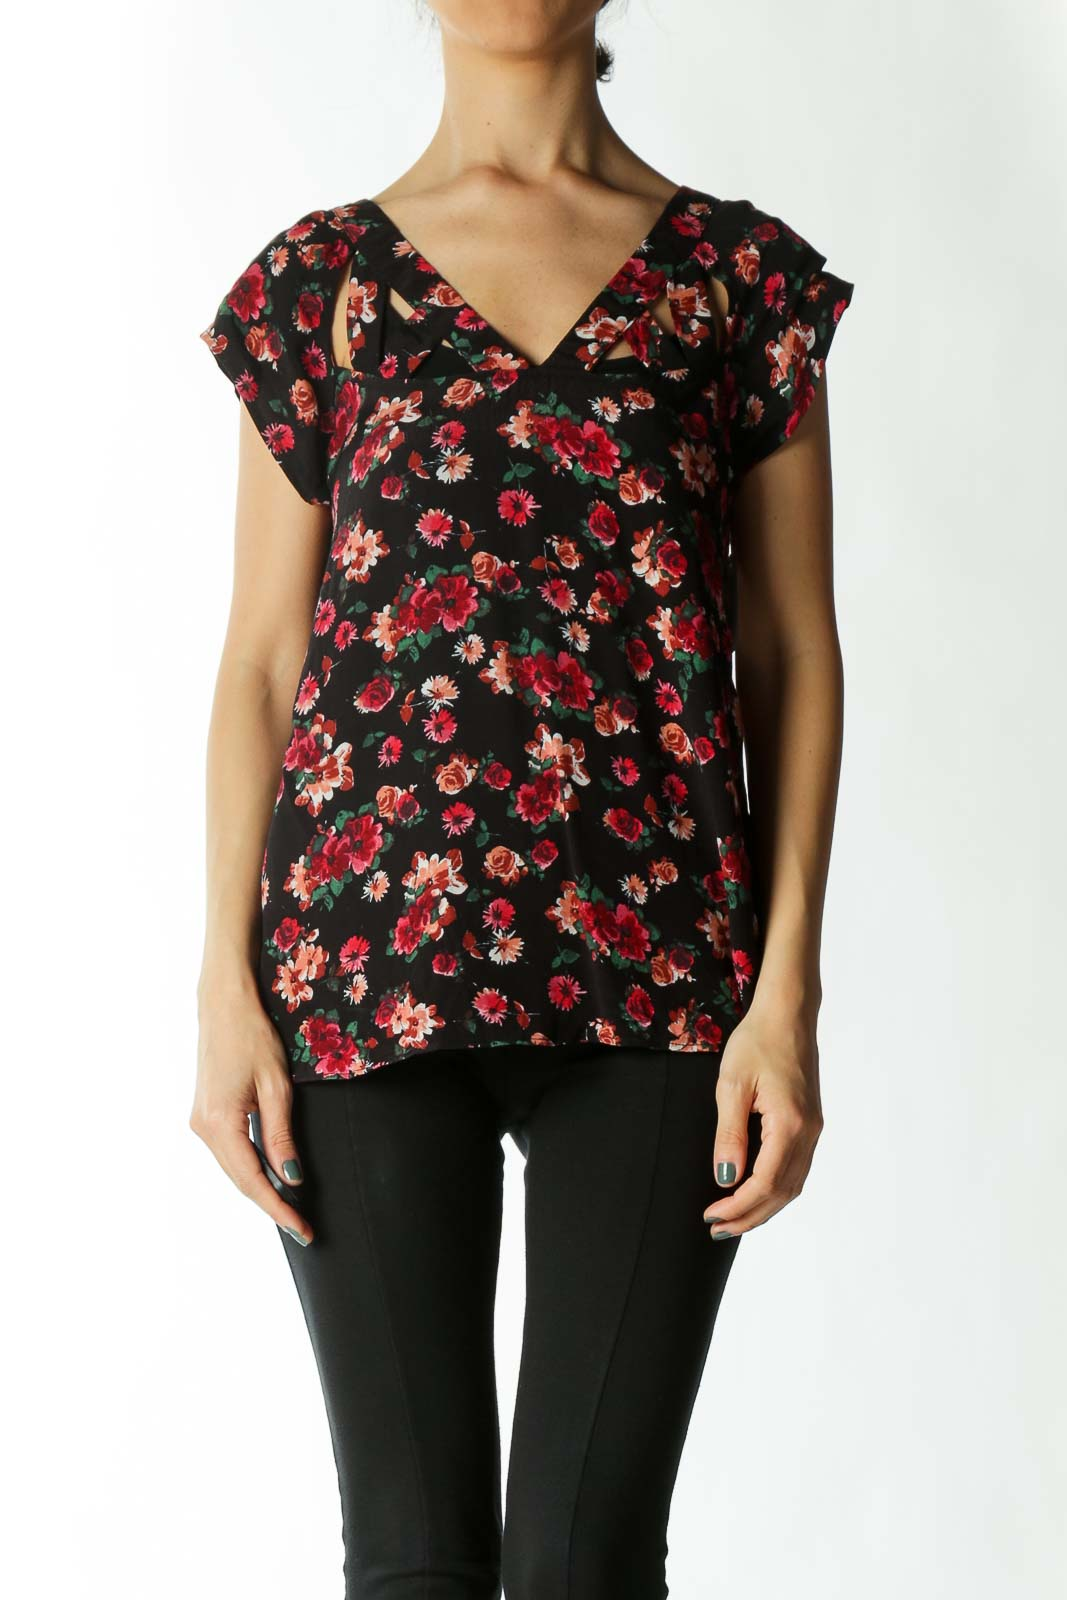 Black Red and Green Floral Cap-Sleeve Blouse with Cut-Out Collar Detailing